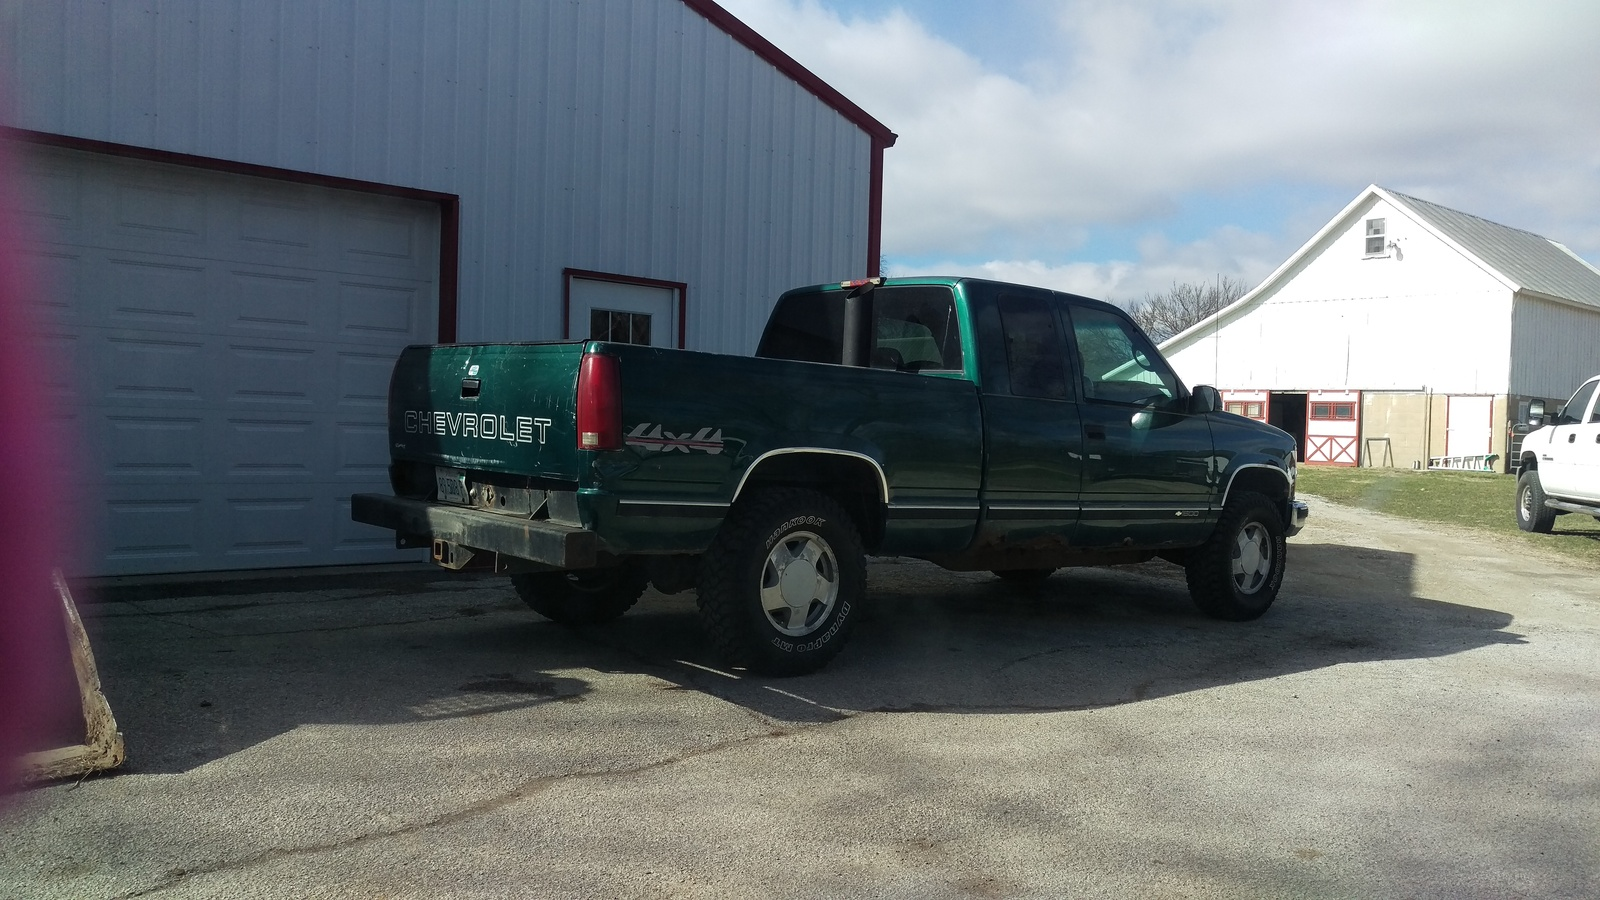 I have a 97 Chevy K1500 extended cab 4wd and was told i needed a complete  bumper to bumper wiring harness. Does any prior years chevy trucks harness  ...